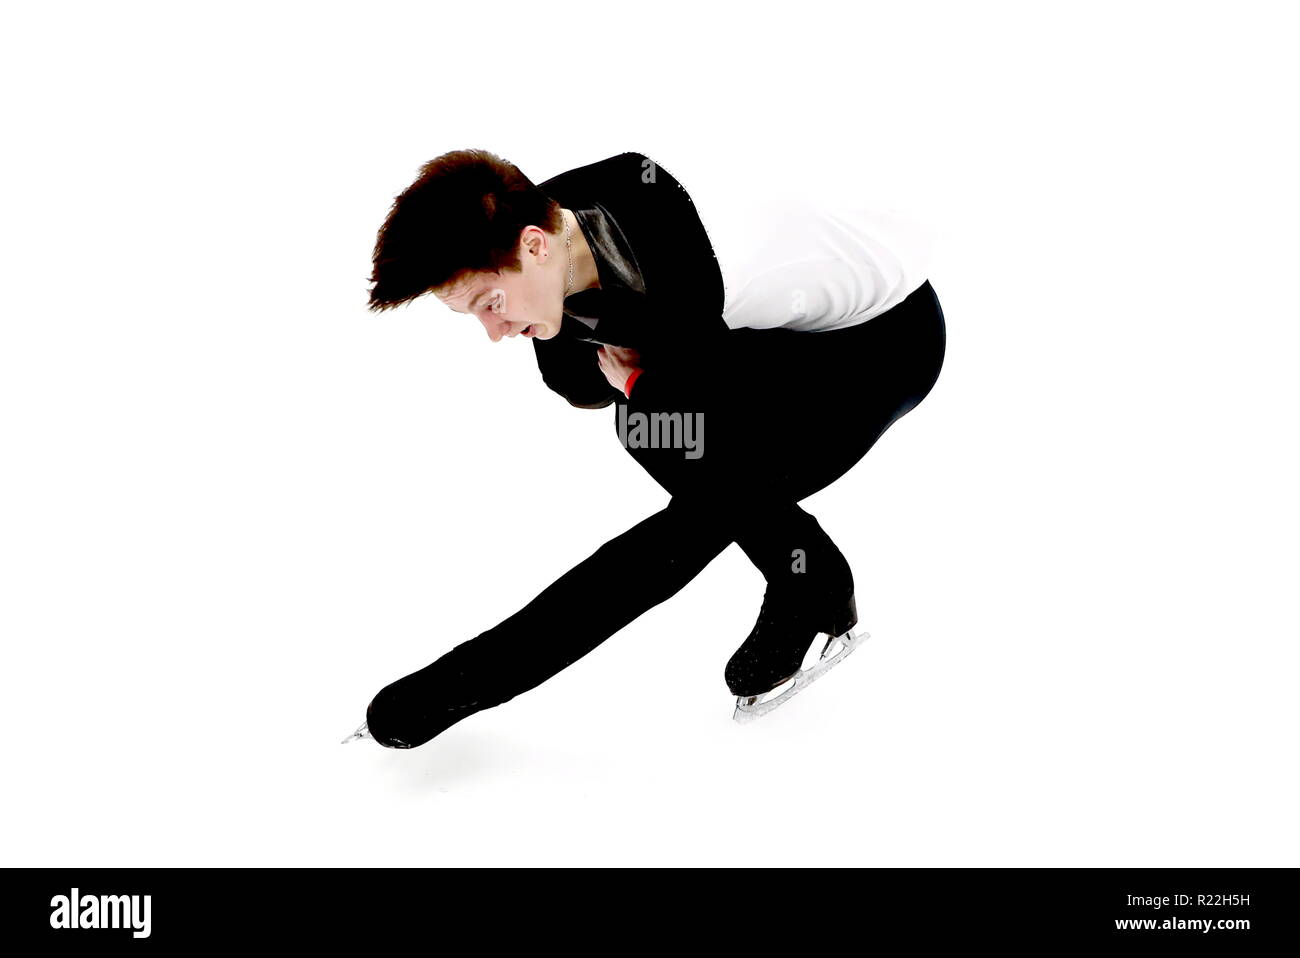 Moscow, Russia. 16th Nov, 2018. MOSCOW, RUSSIA - NOVEMBER 16, 2018: Figure skater Andrei Lazukin of Russia performs during the men's short program event at the 2018 Rostelecom Cup, the fifth of six events in the 2018-19 ISU Grand Prix of Figure Skating, at Megasport Arena. Valery Sharifulin/TASS Credit: ITAR-TASS News Agency/Alamy Live News - Stock Image